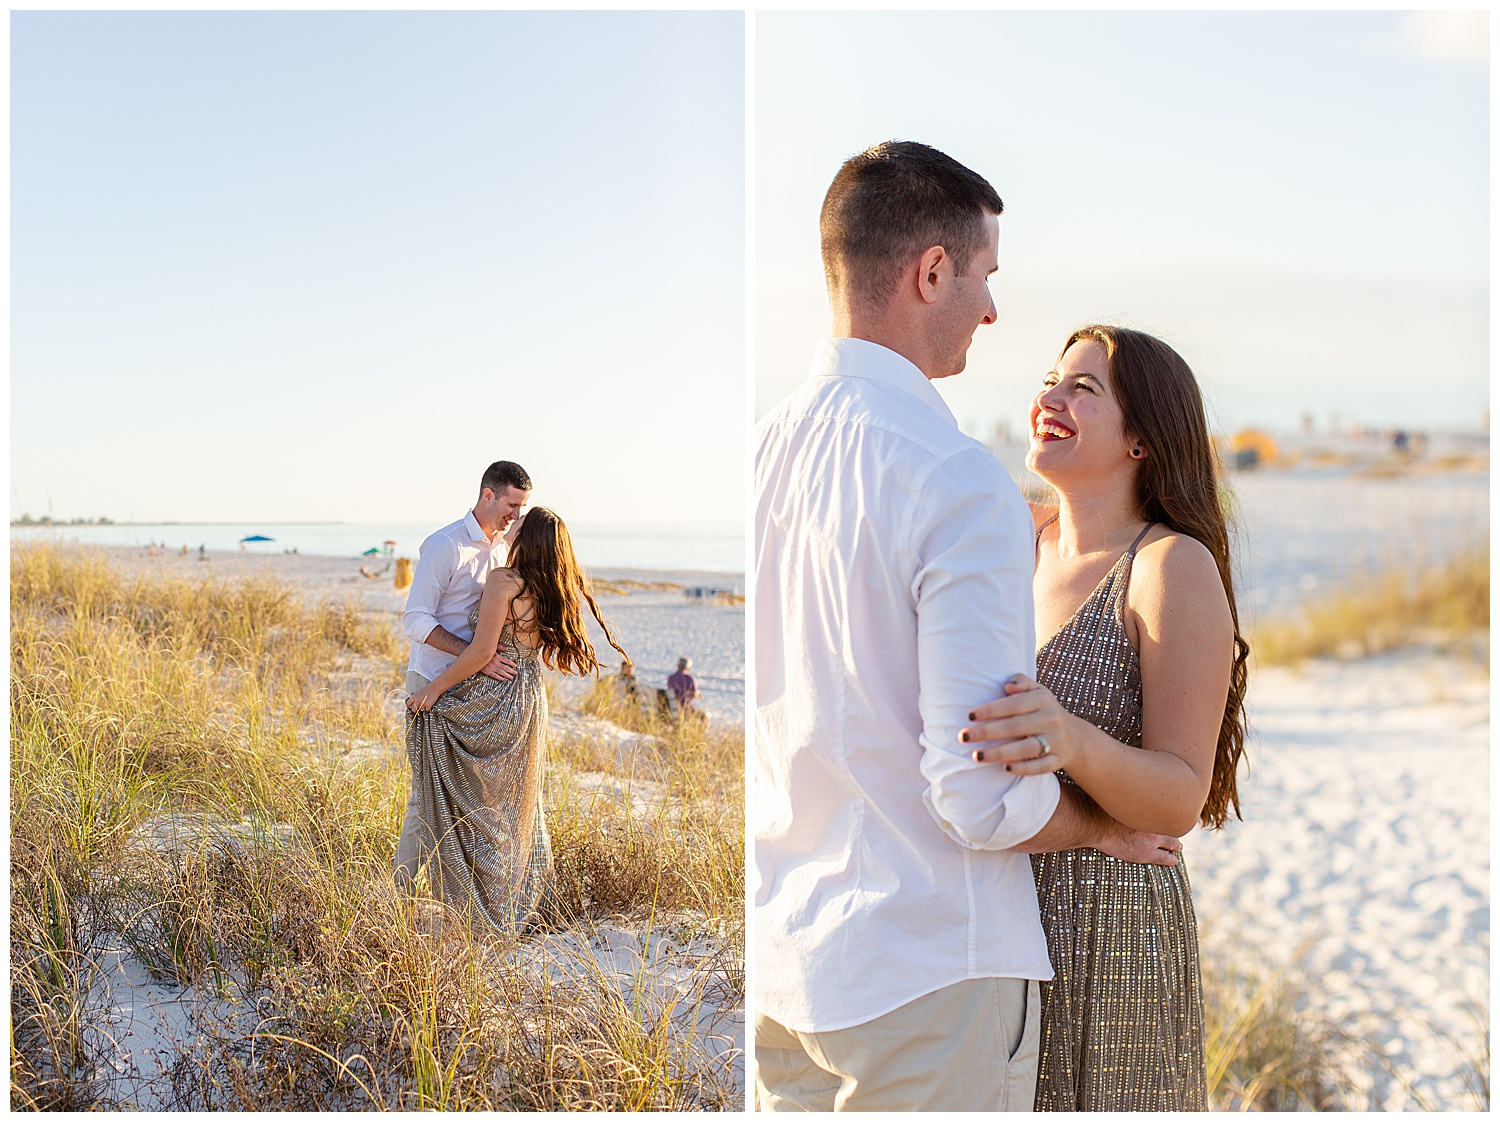 emily-belson-photography-florida-engagement-16.jpg